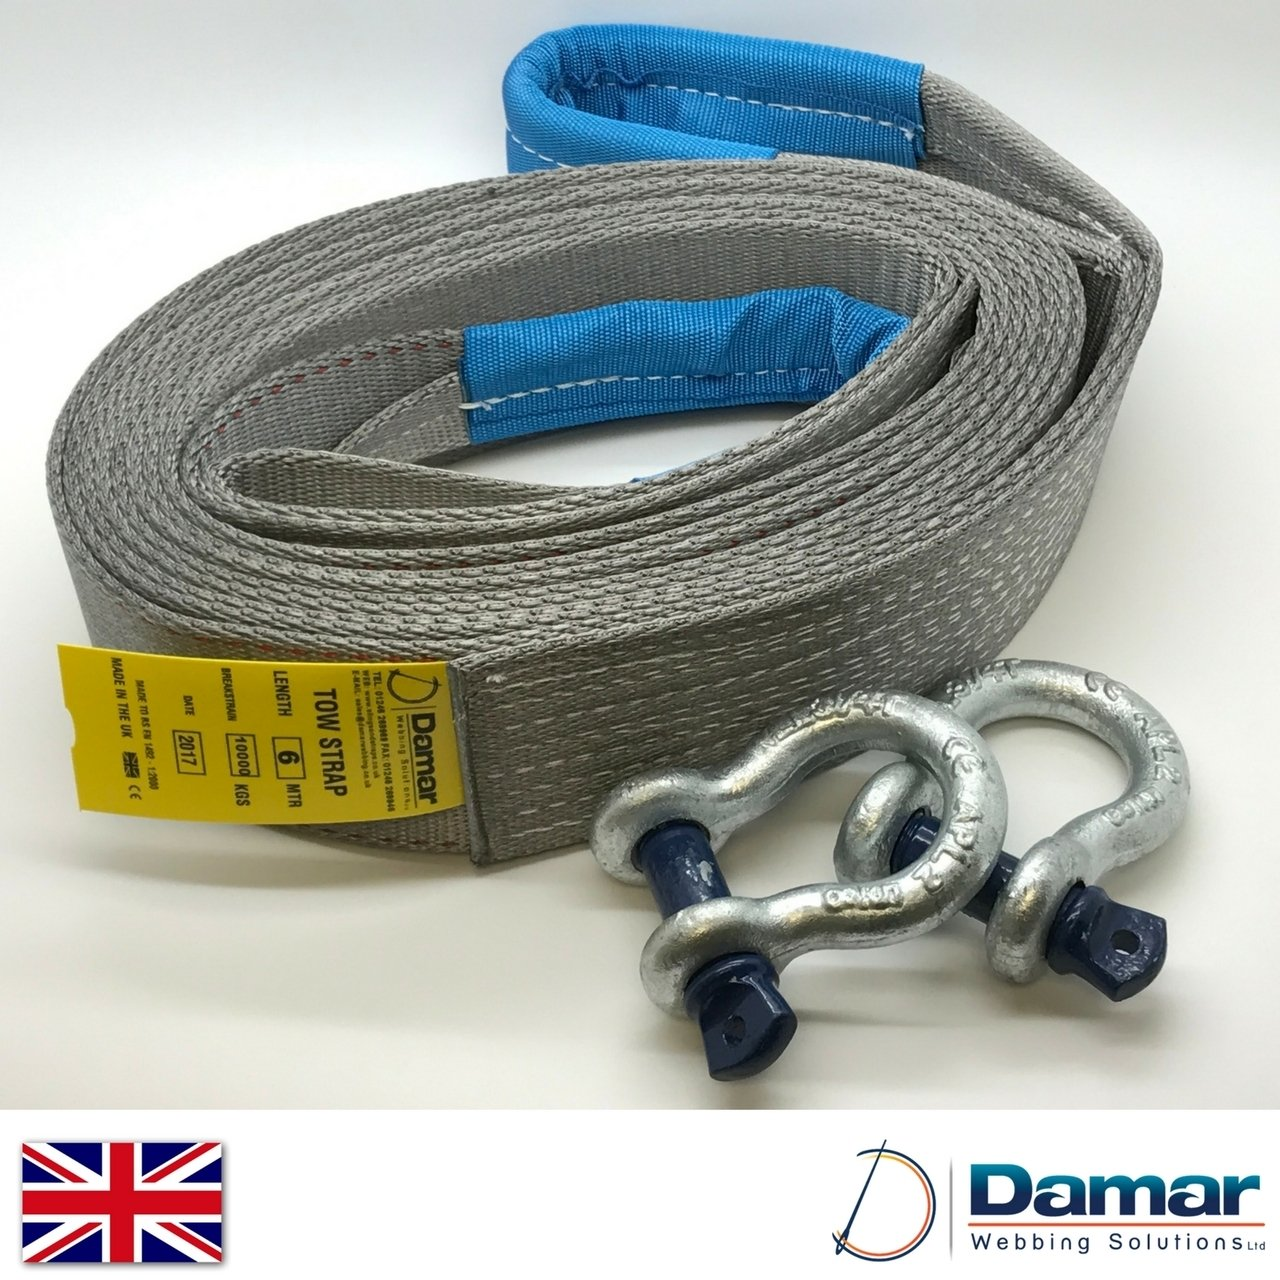 Tow strap 4x4 recovery 6mtr 10ton with 2 tested shackles Damar Webbing Solutions